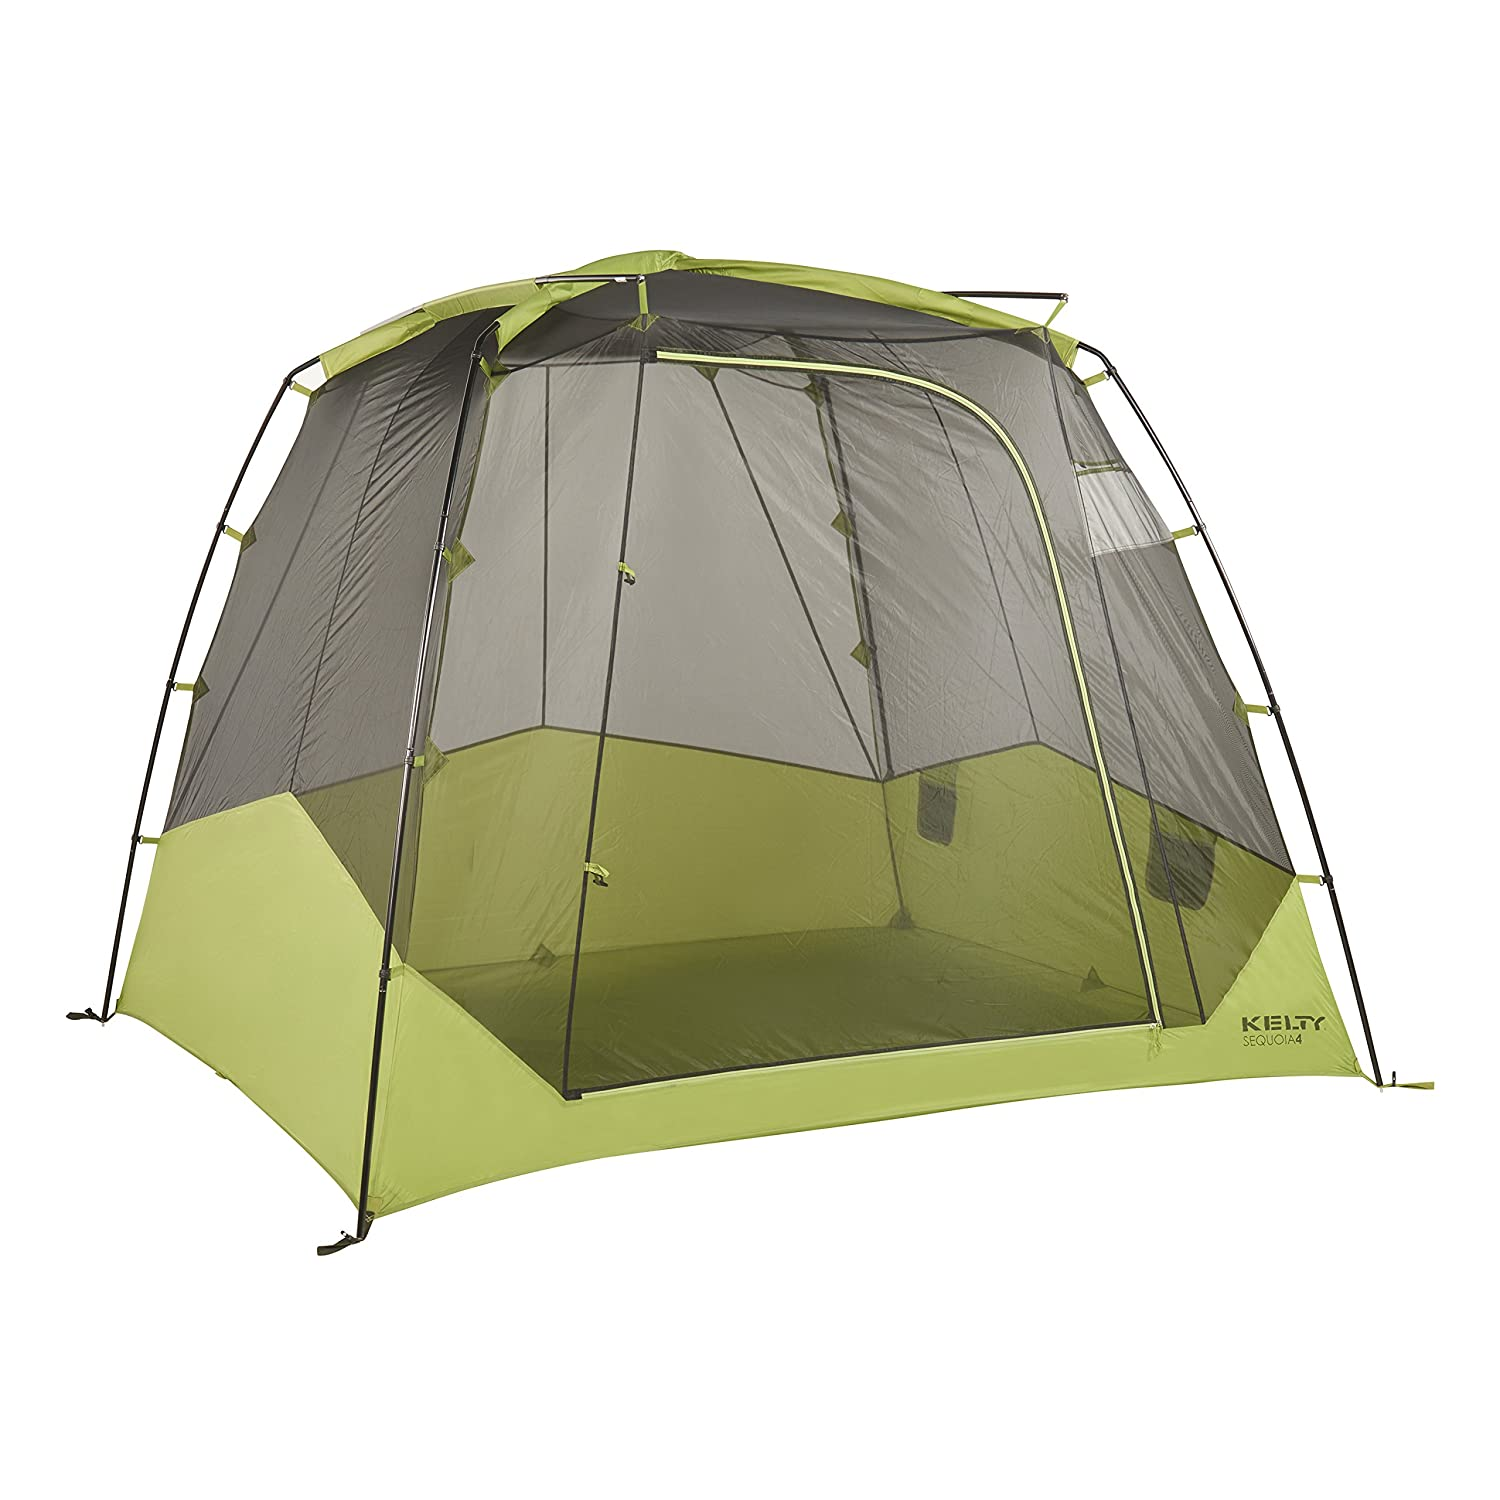 Kelty Sequoia 4 and 6 Person Camping Tents